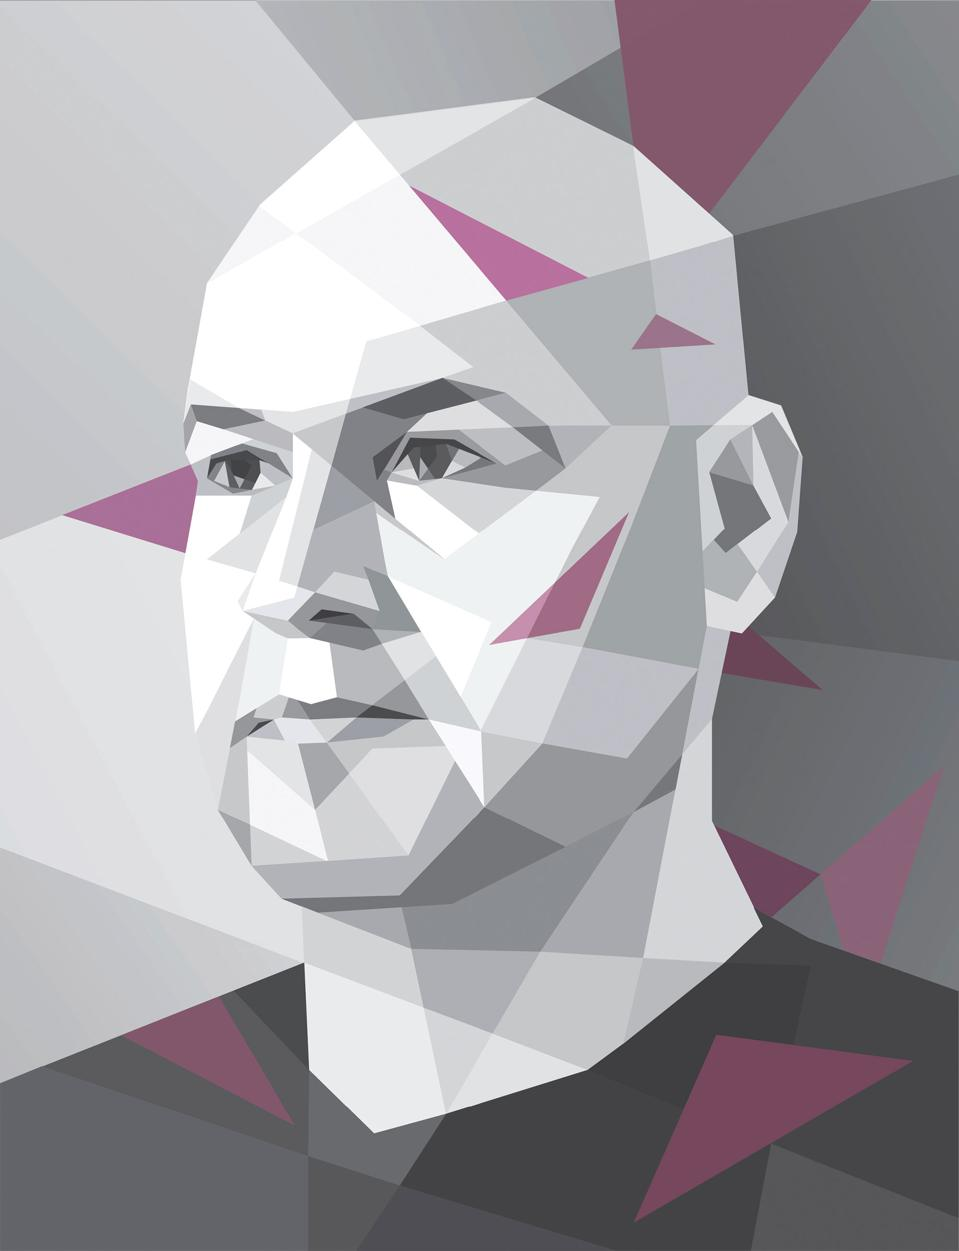 Cryptopia In Crisis: Joe Lubin's Ethereum Experiment Is A Mess. How Long Will He Prop It Up?